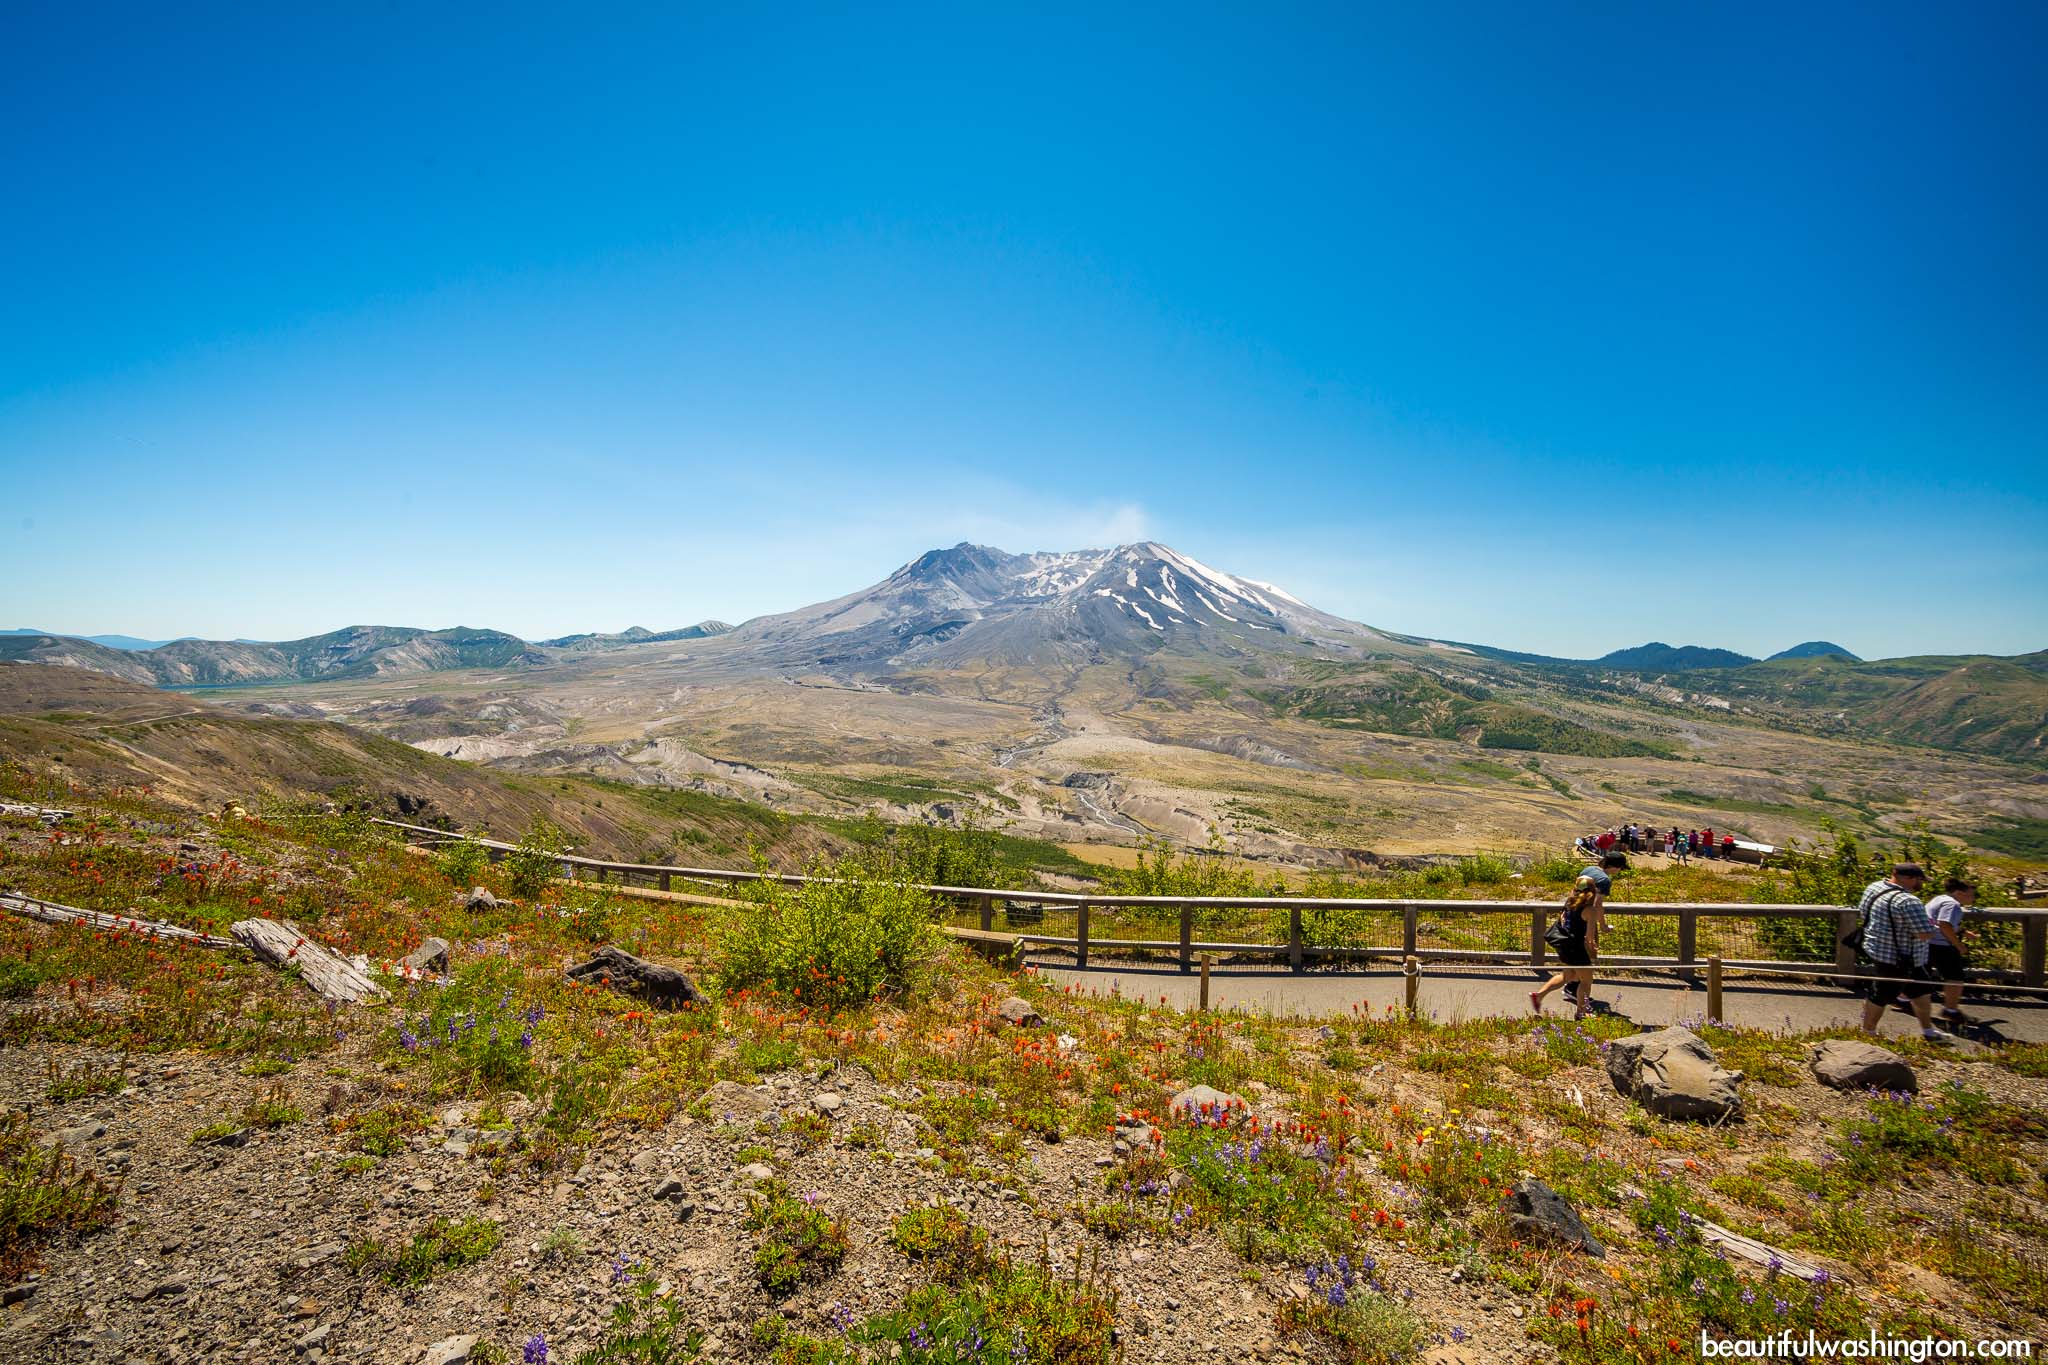 Photo from Mount St. Helens Area, Harry's Ridge Trail